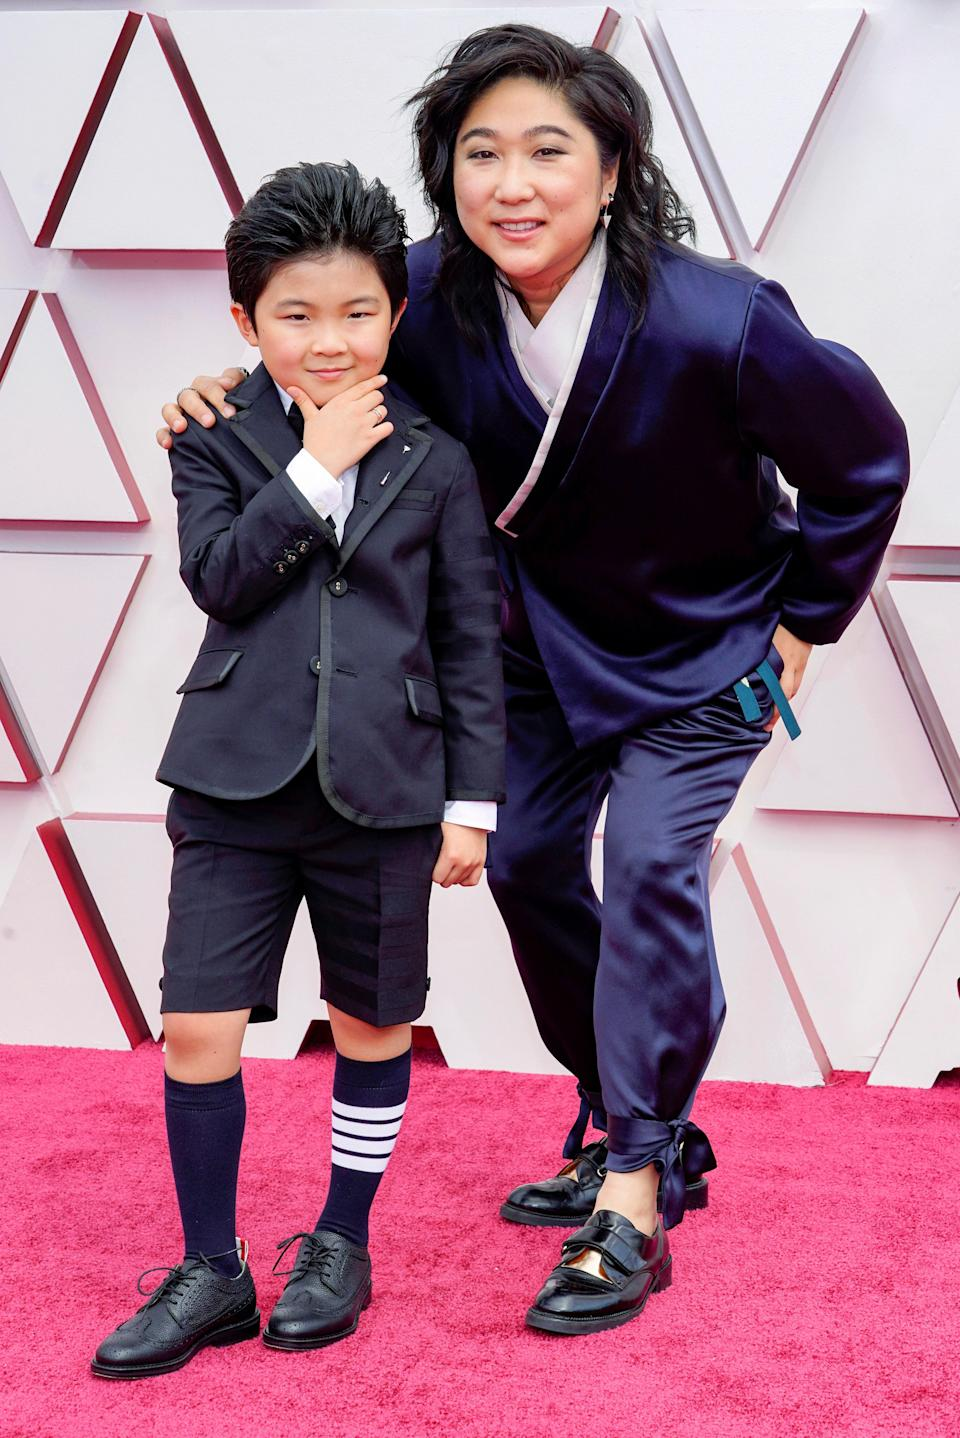 Alan Kim is goals. The shorts, the socks, the hair - his style is unparalleled. Never mind the fact he is only for an 8-year old. (Seen here taking on the red carpet with his stylish mom, Vicky Kim)